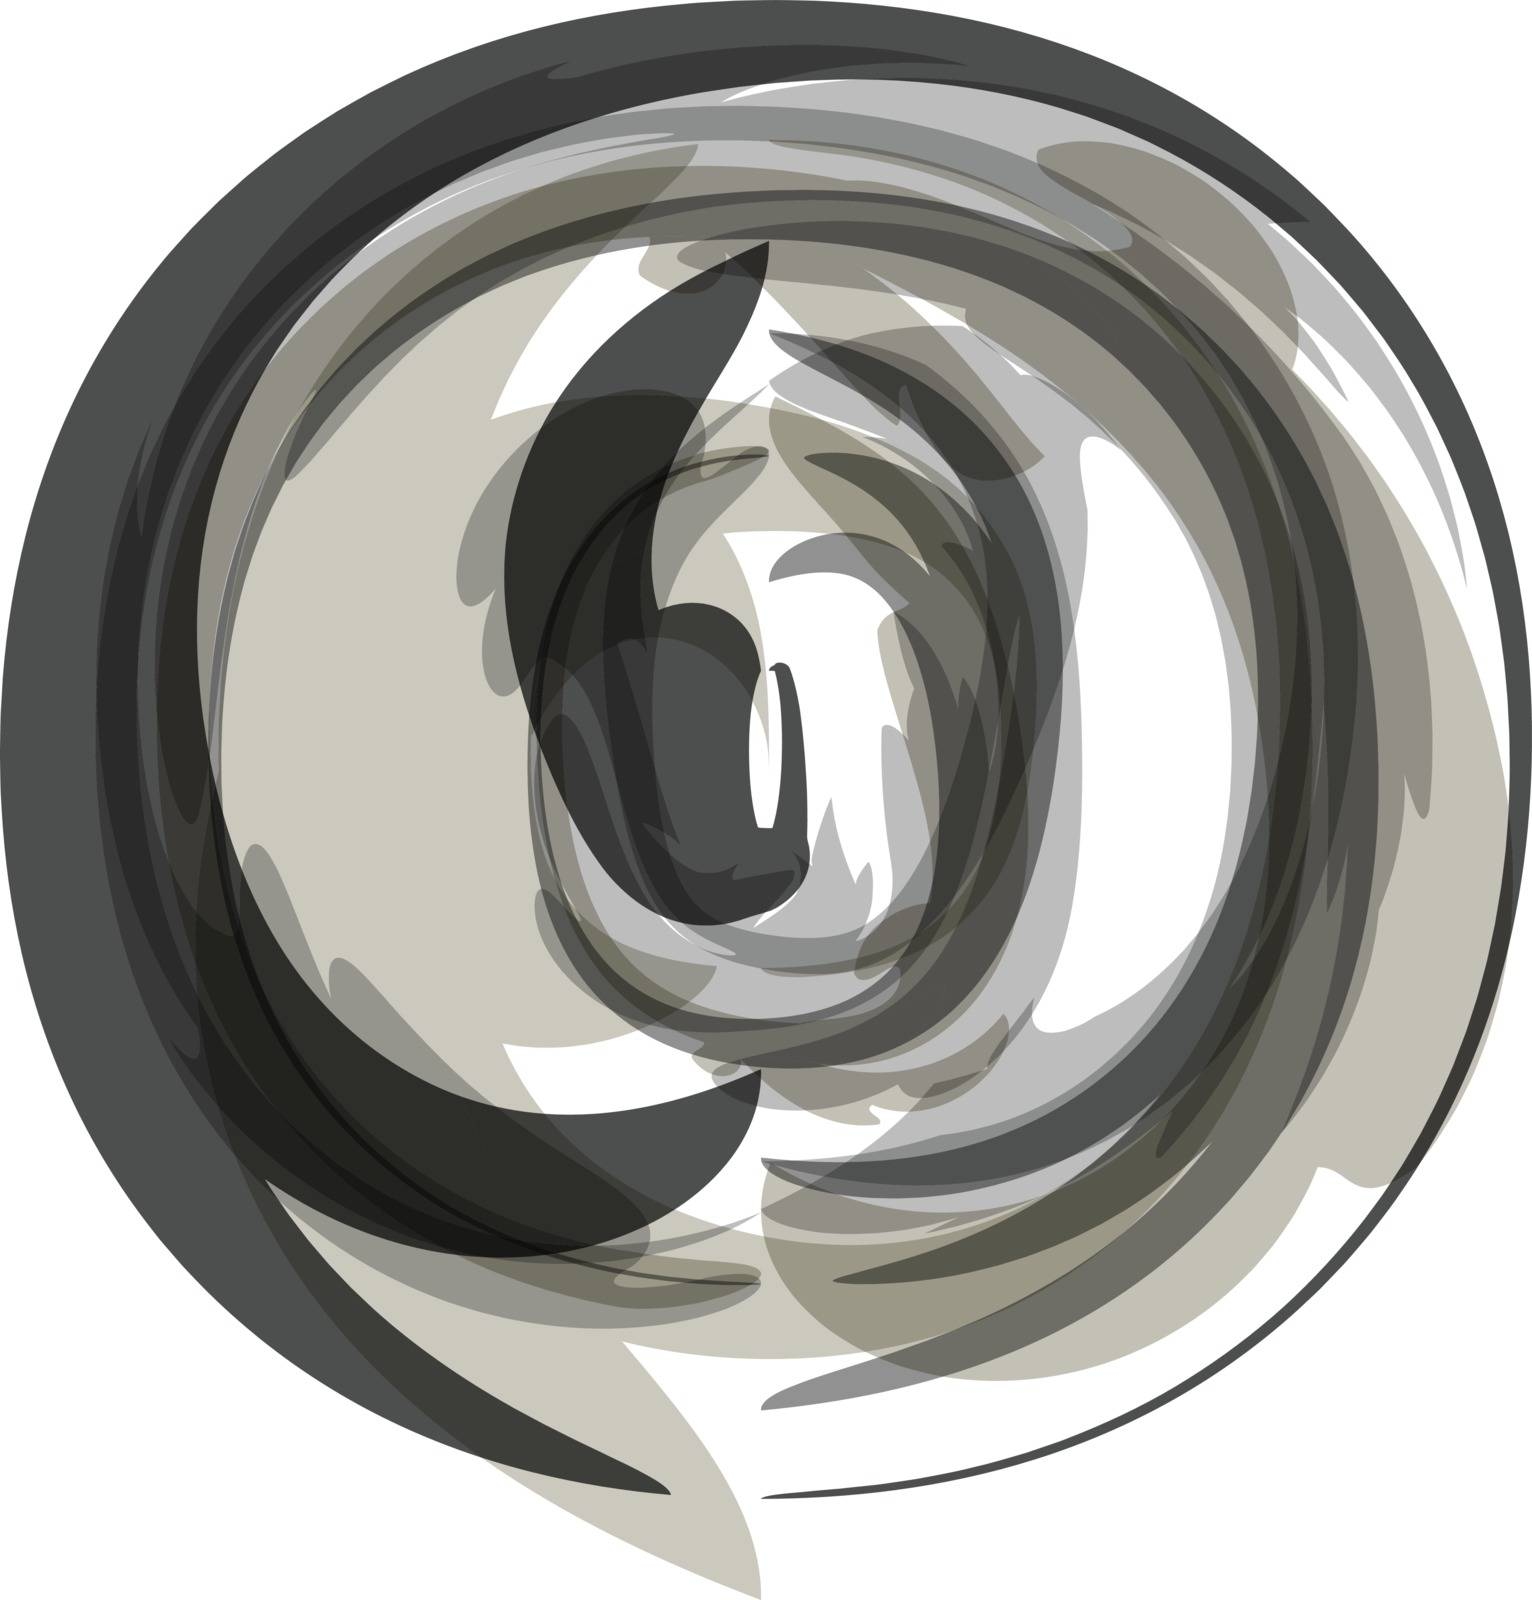 Abstract Letter o Illustration